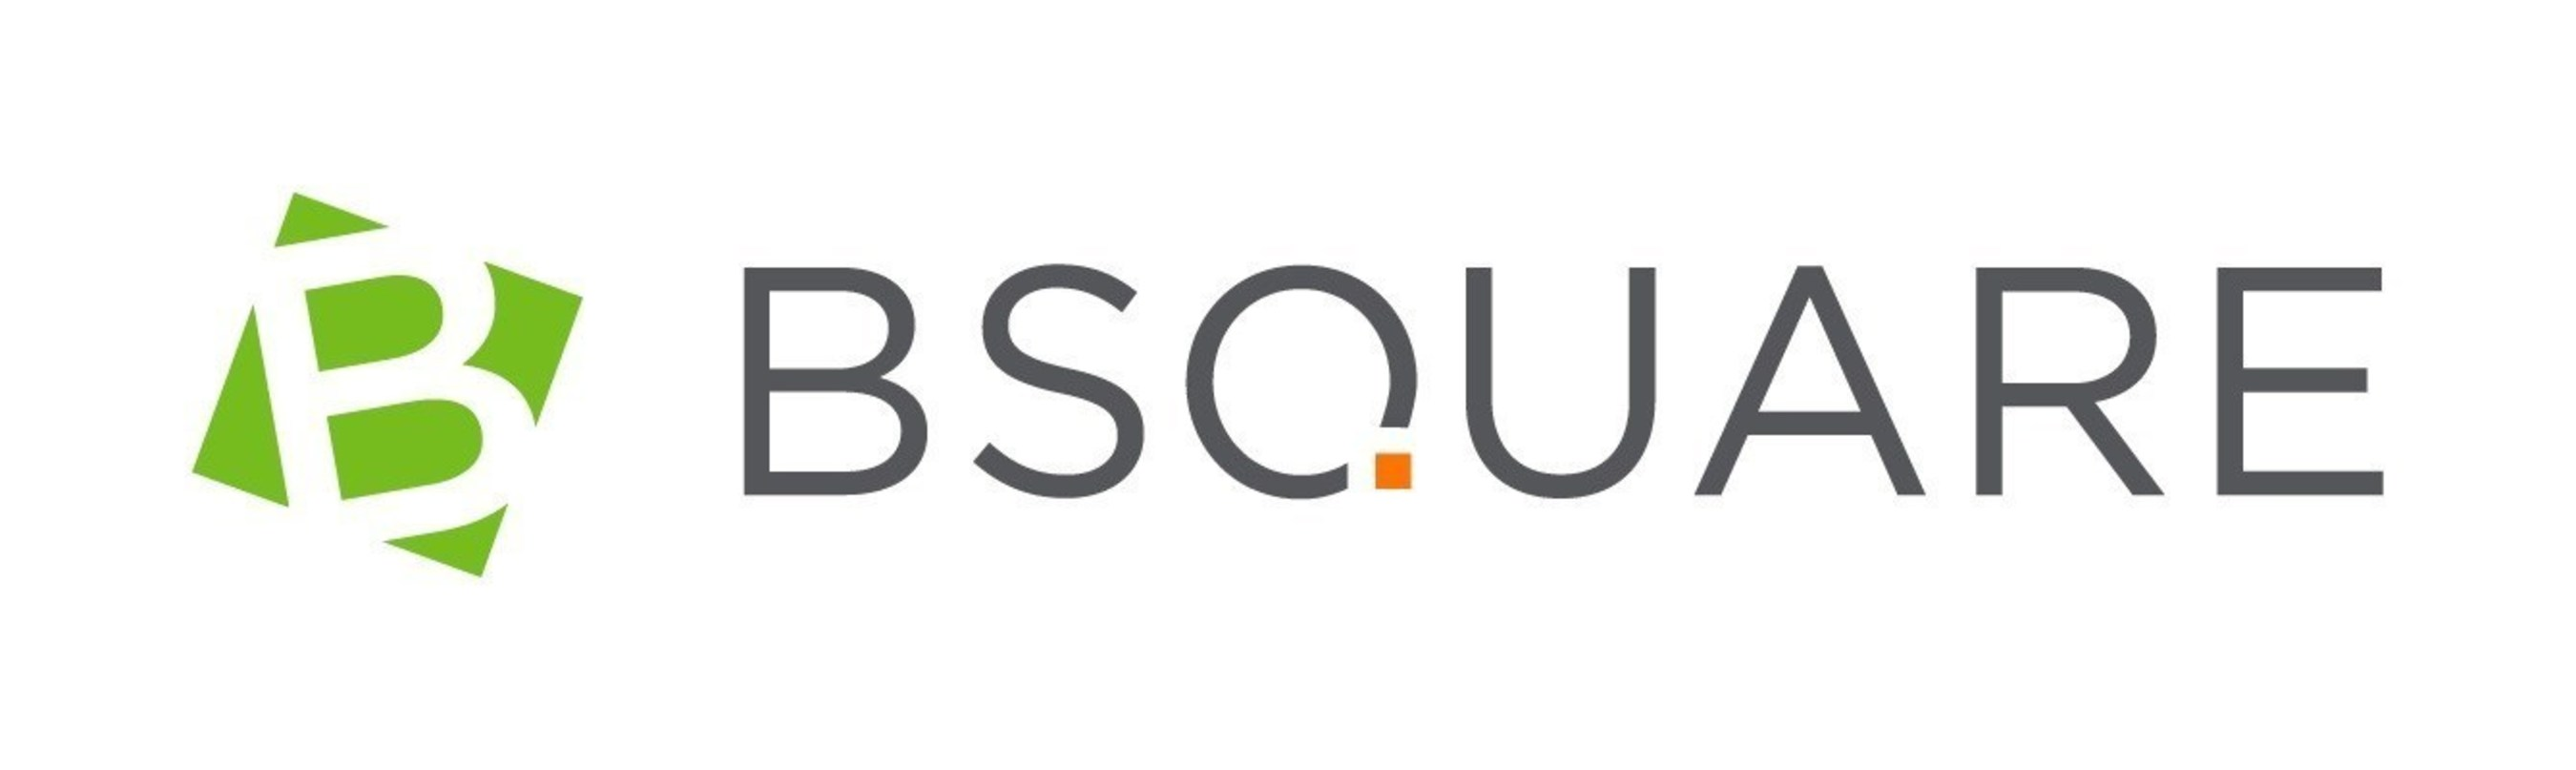 Bsquare Reports Fourth Quarter and Full Year 2016 Results